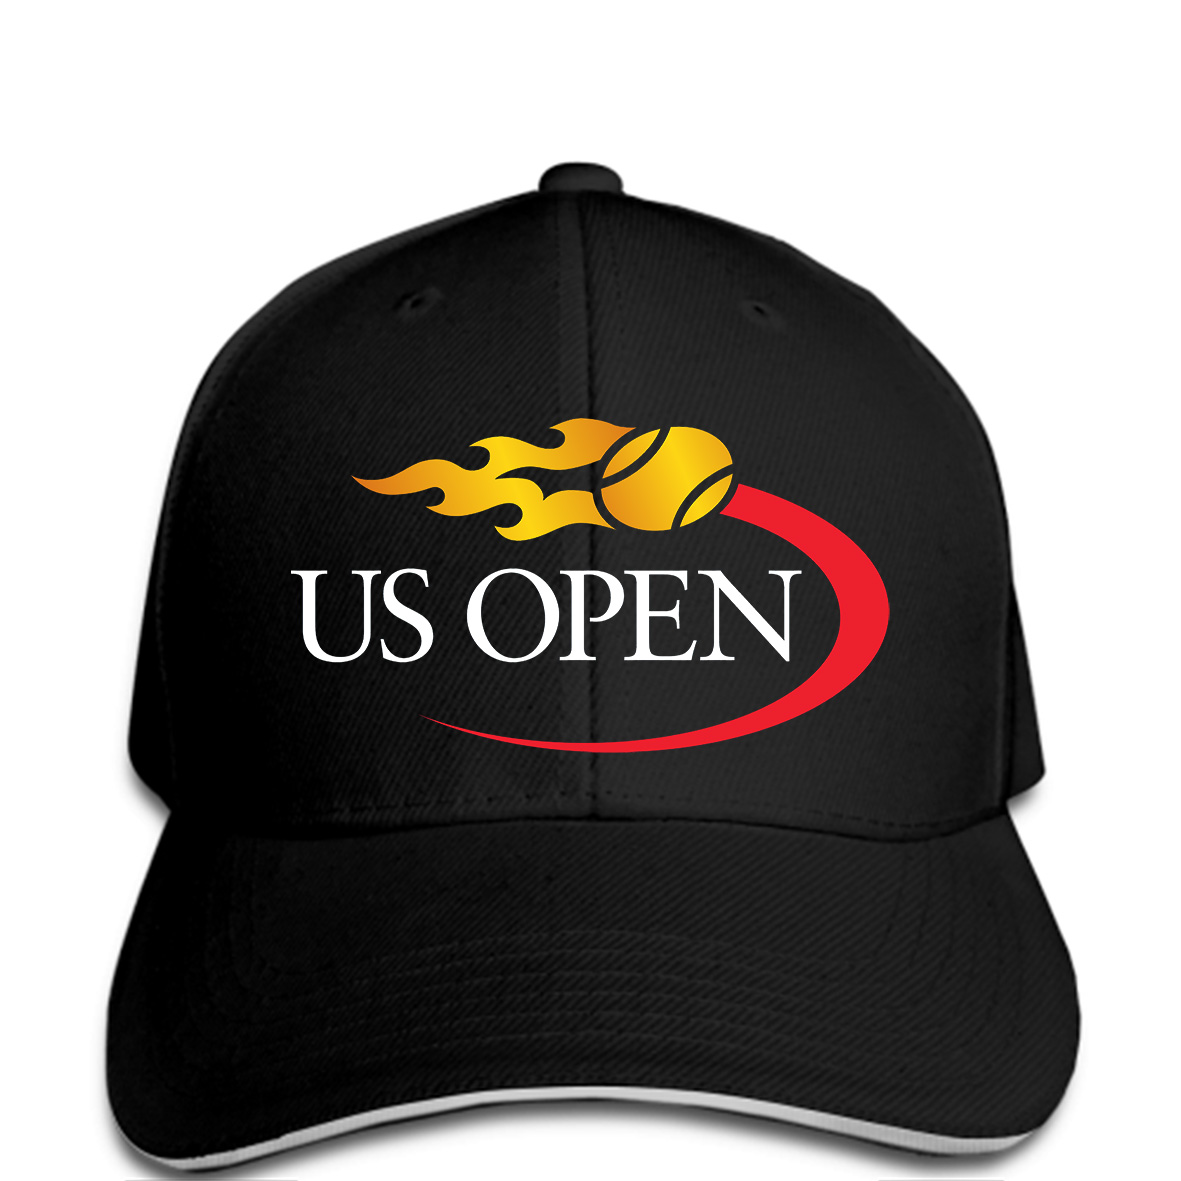 Men Baseball cap Us Open Tennis Federer Murray Wimbledon snapback Hat  women-in Baseball Caps from Apparel Accessories on Aliexpress.com  77725a942a5